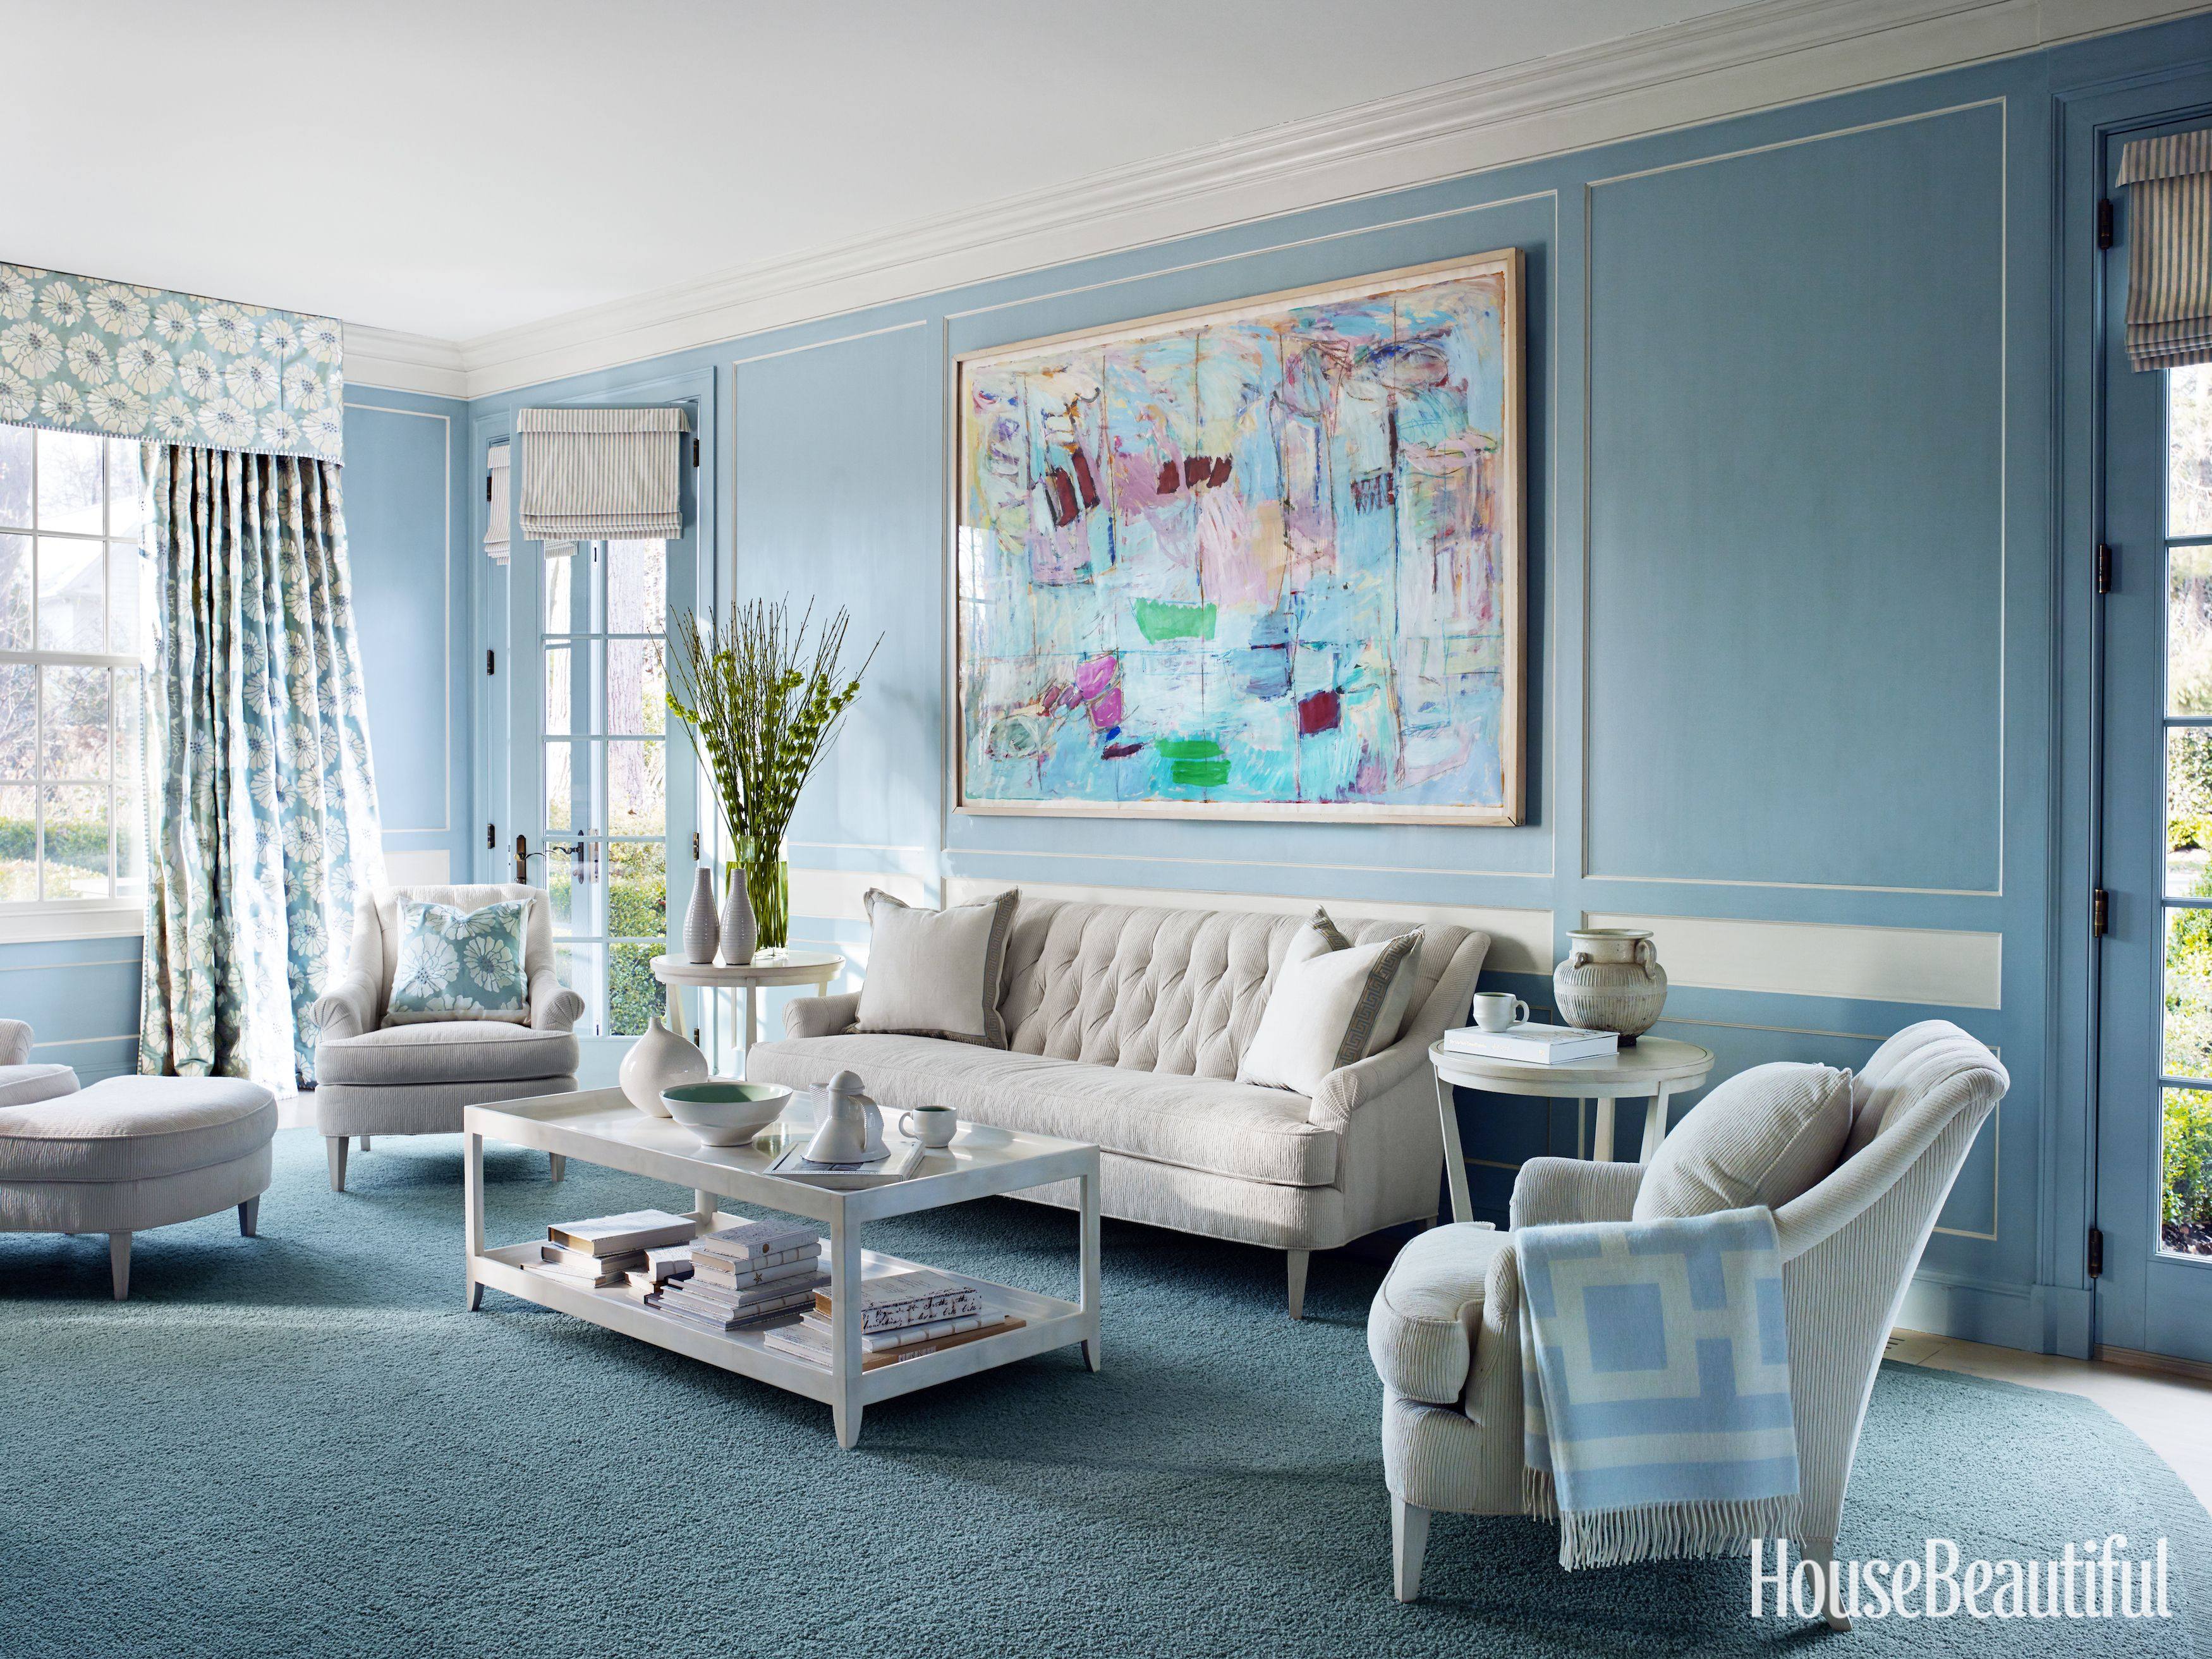 How To Decorate With Blue Using Blue In Every Room Of